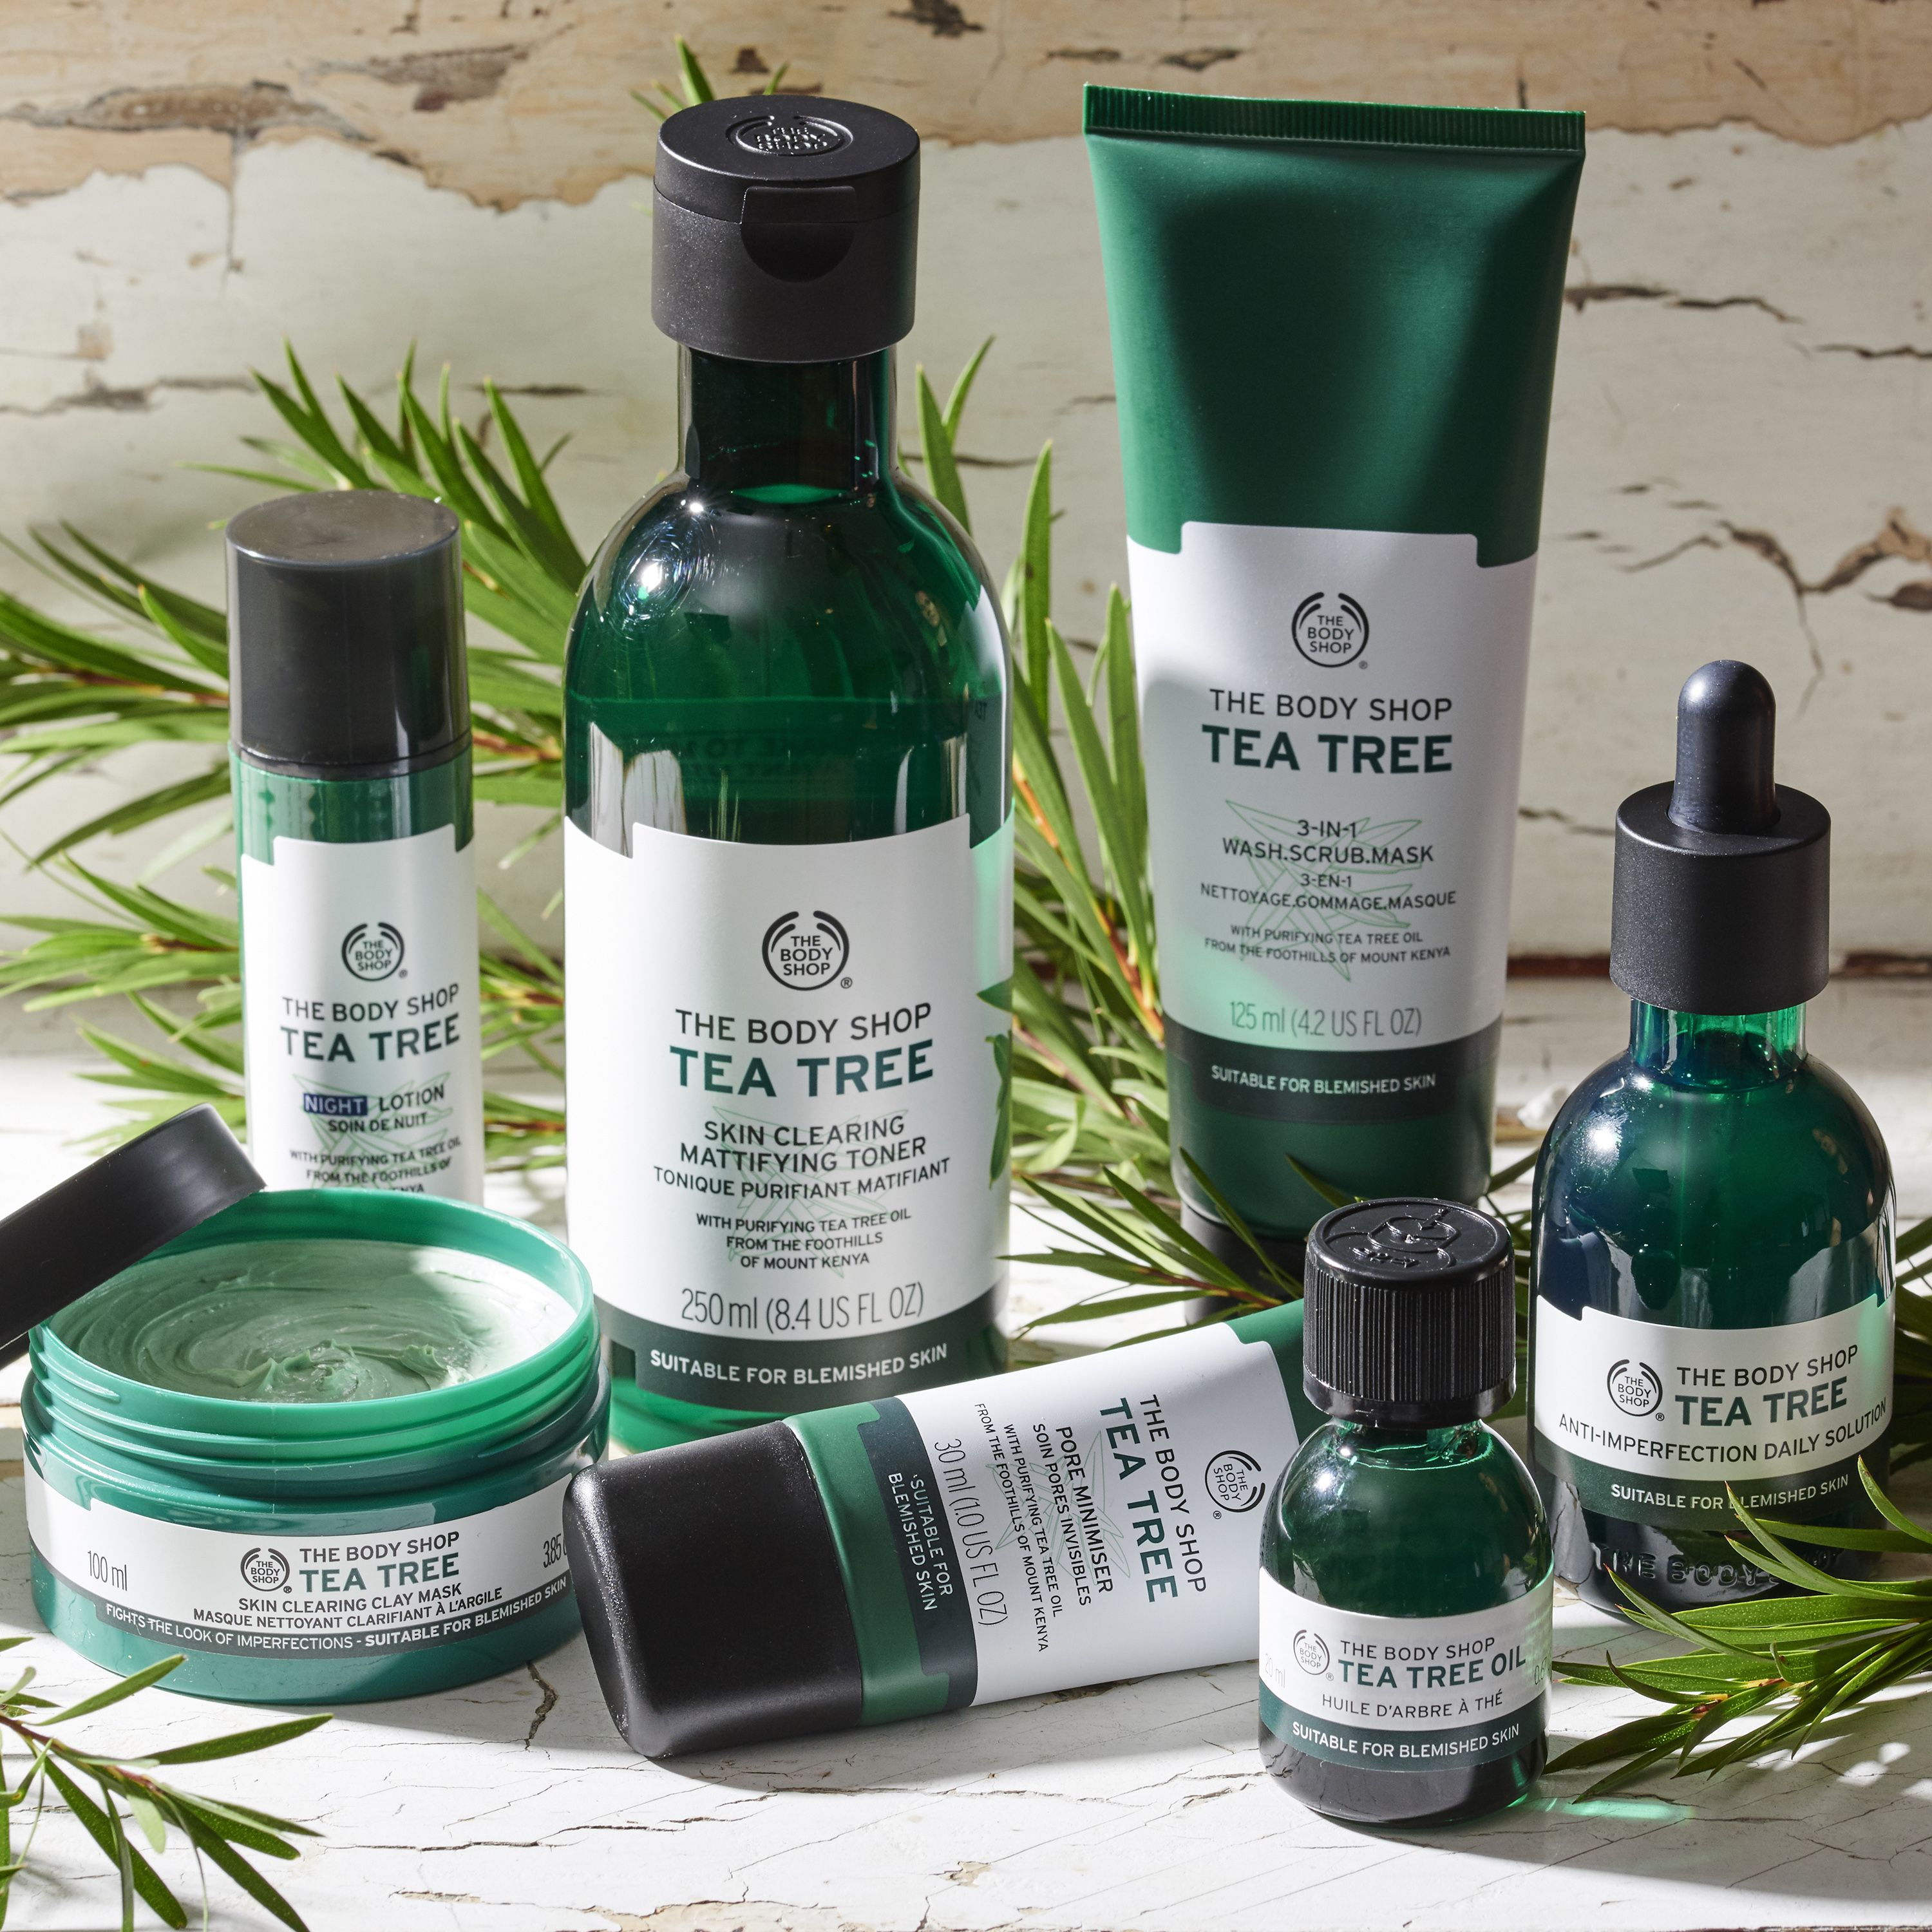 Stay On It With Our Community Trade Tea Tree Range For Smooth Skin That Feels Fresh And Looks Clear Body Shop Tea Tree Body Shop Skincare The Body Shop